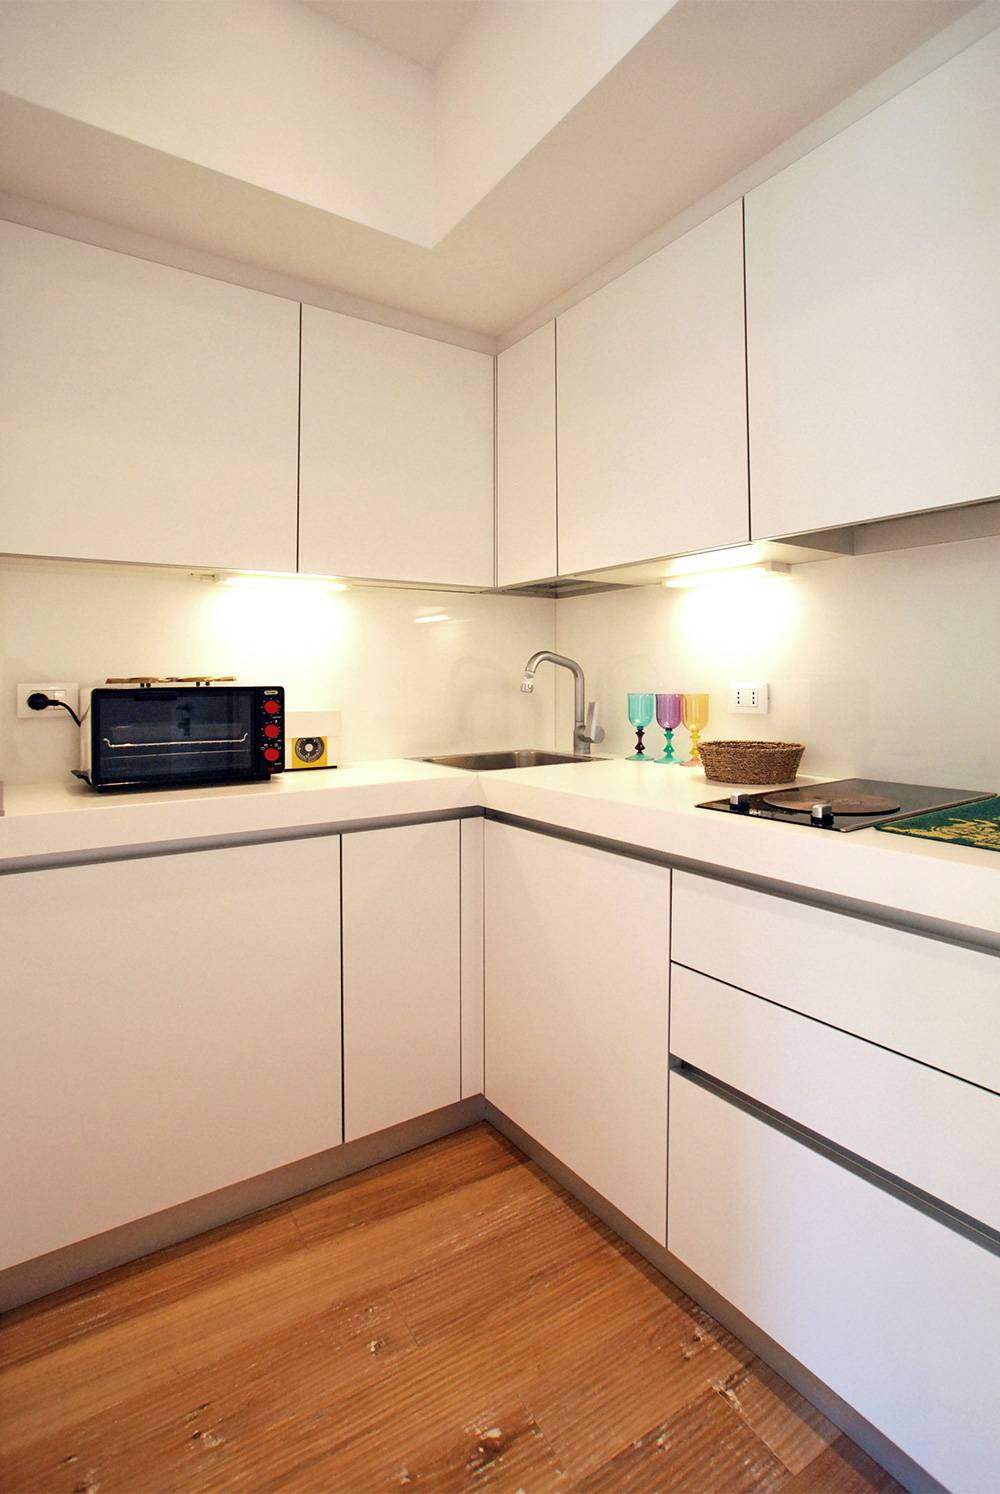 the nice kitchen is compact but functional